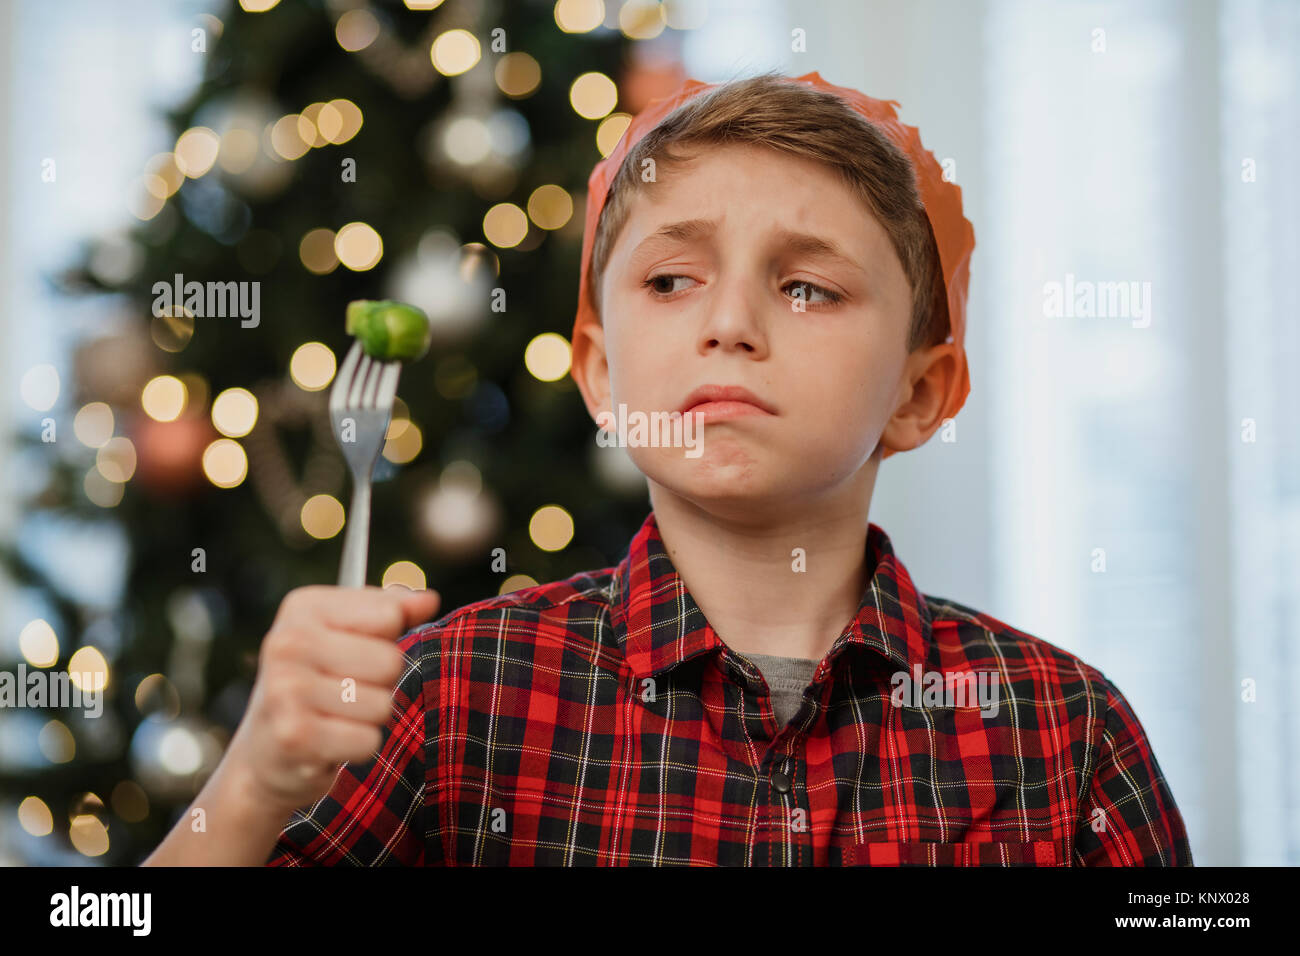 Little boy is holding a brussel sprout on his fork at christmas time. He is wearing a party hat and is grimacing - Stock Image